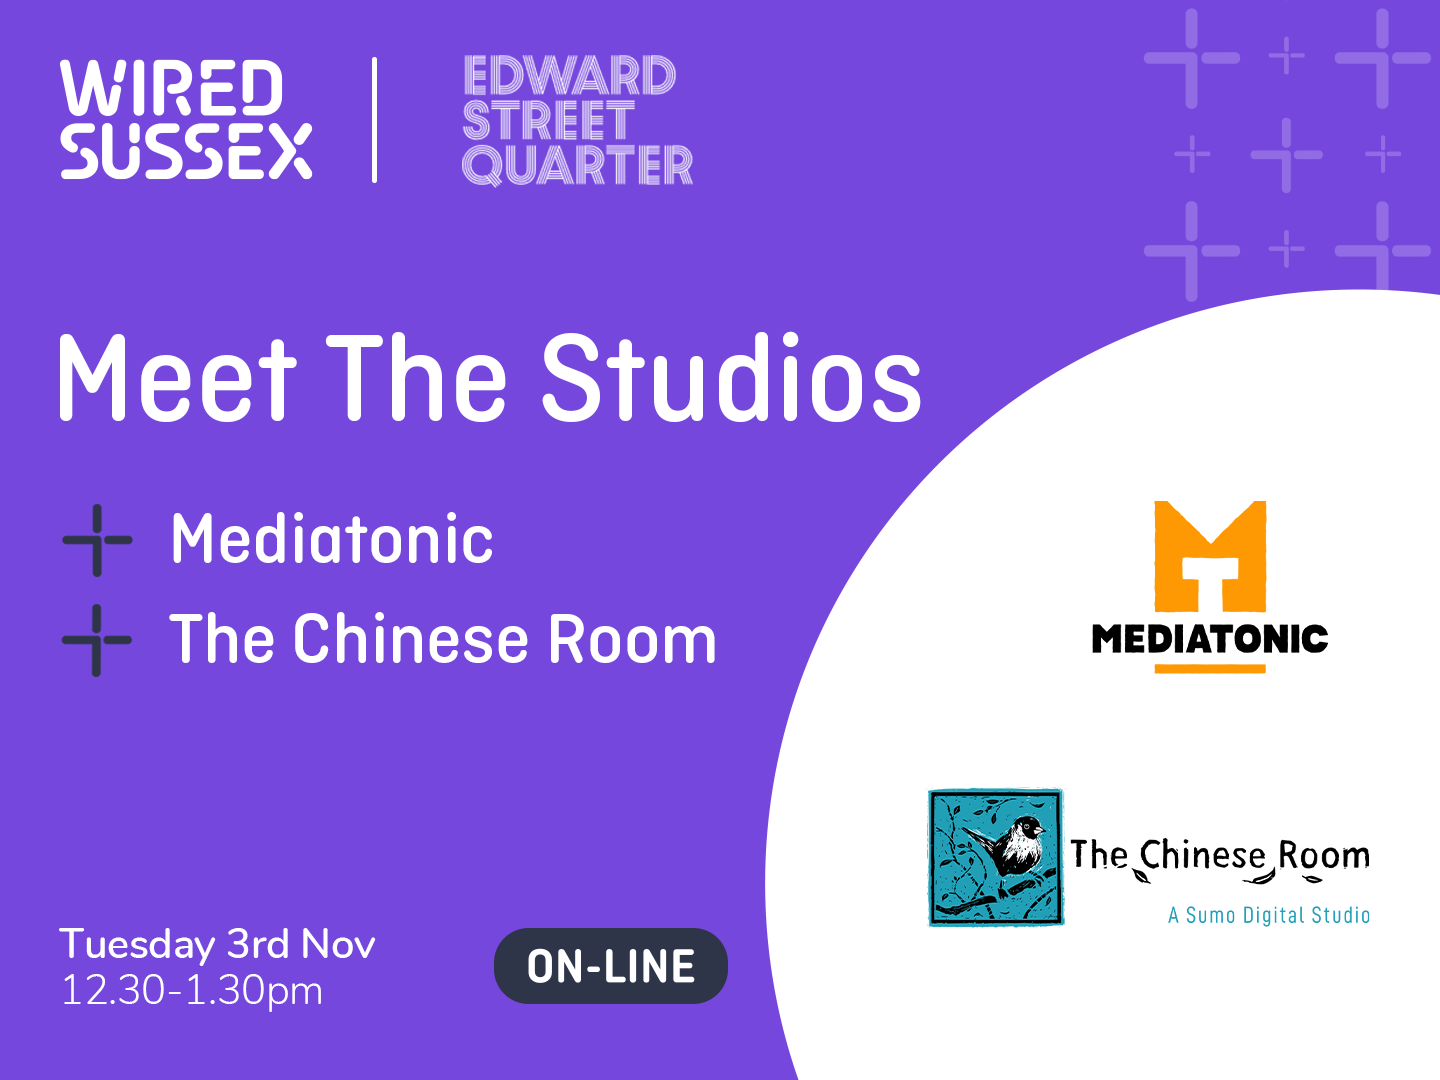 Meet The Studios: Mediatonic & The Chinese Room